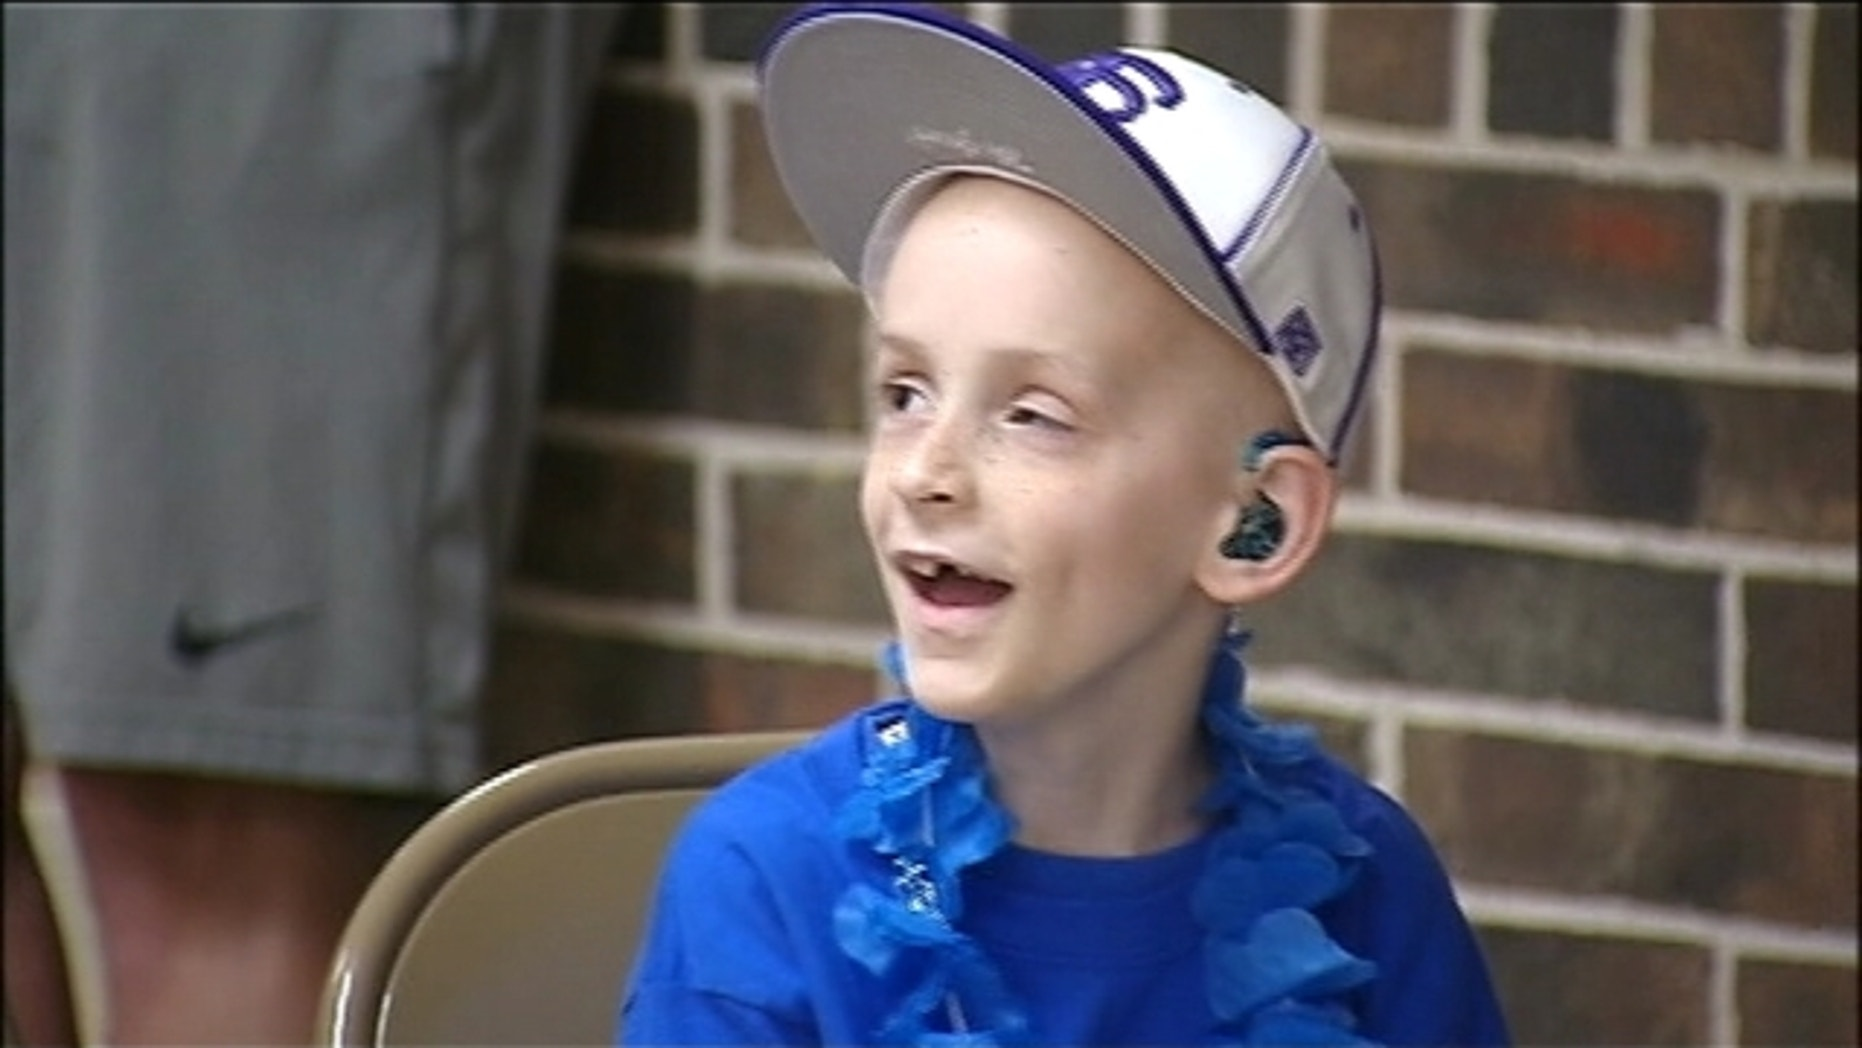 Micah Ahern has been battling cancer for the last six years. Now, he's going to Hawaii.